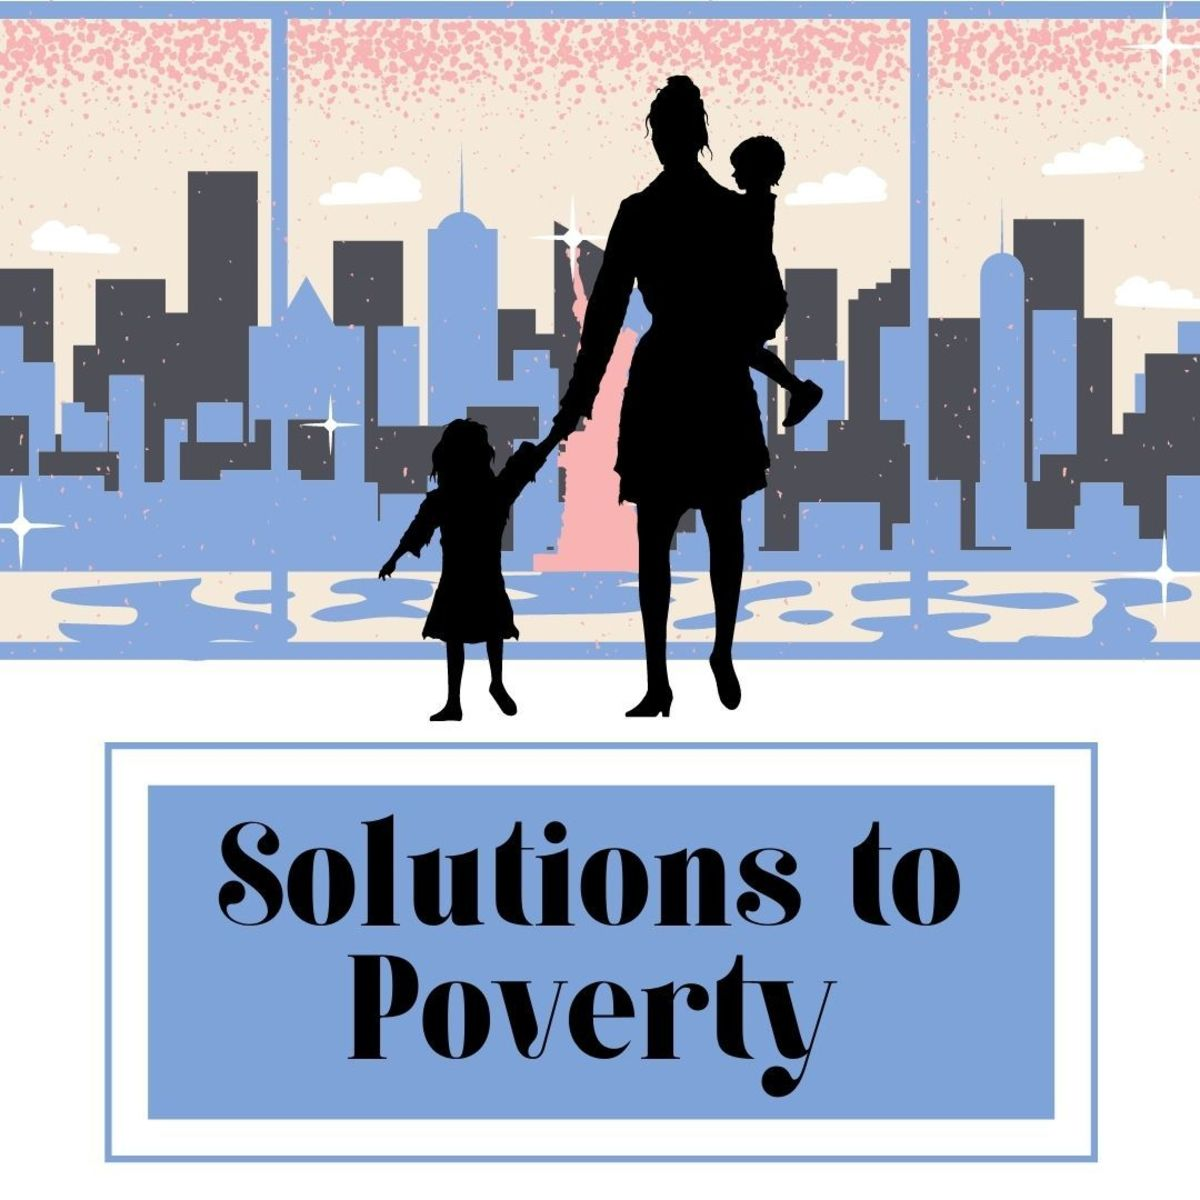 6 Solutions to Poverty in America